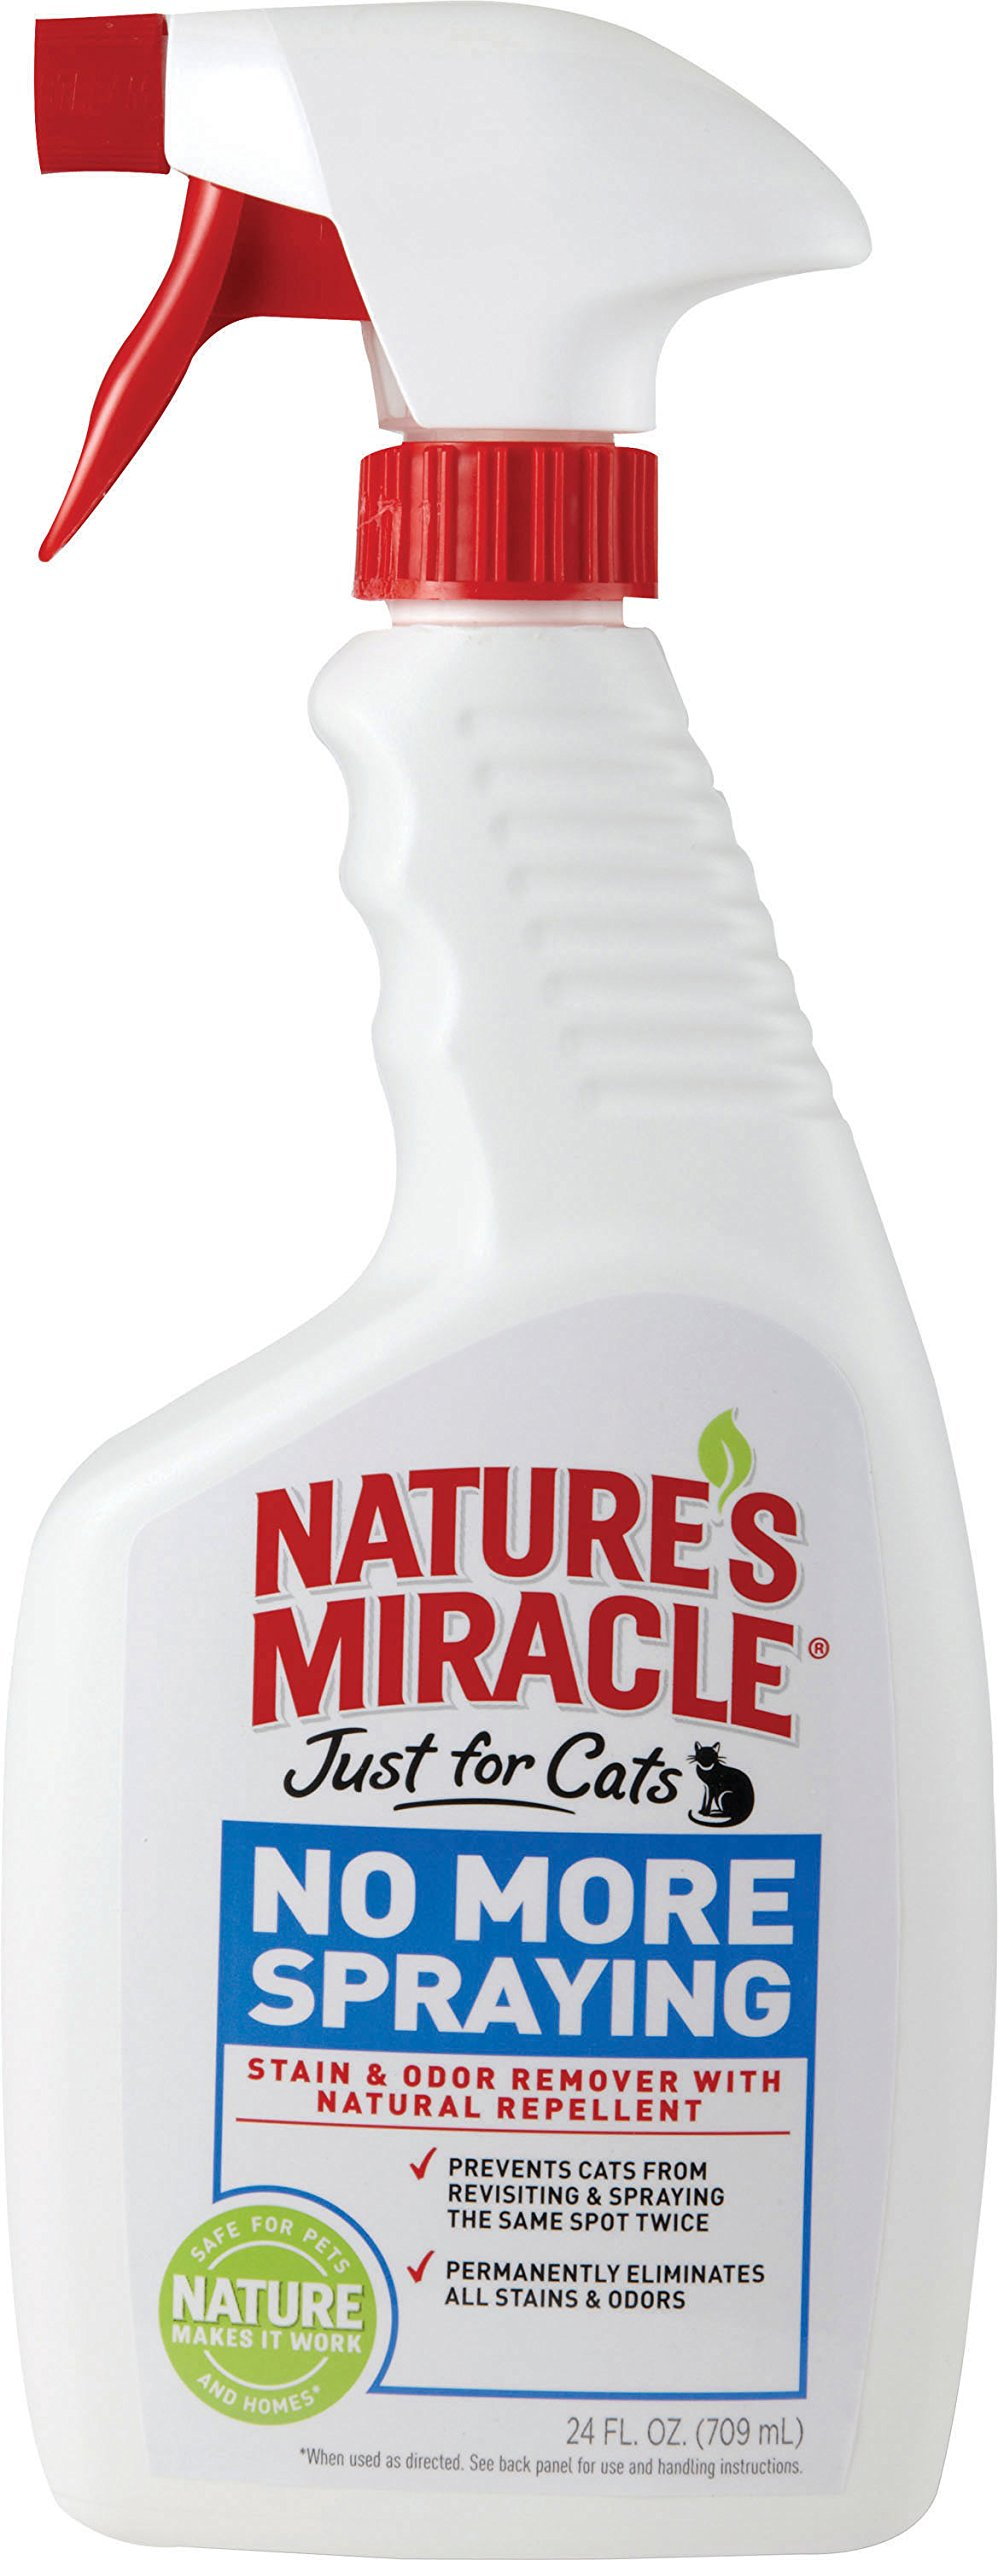 Nature's Miracle No More Spraying, Stain And Odor Remover, Repellent